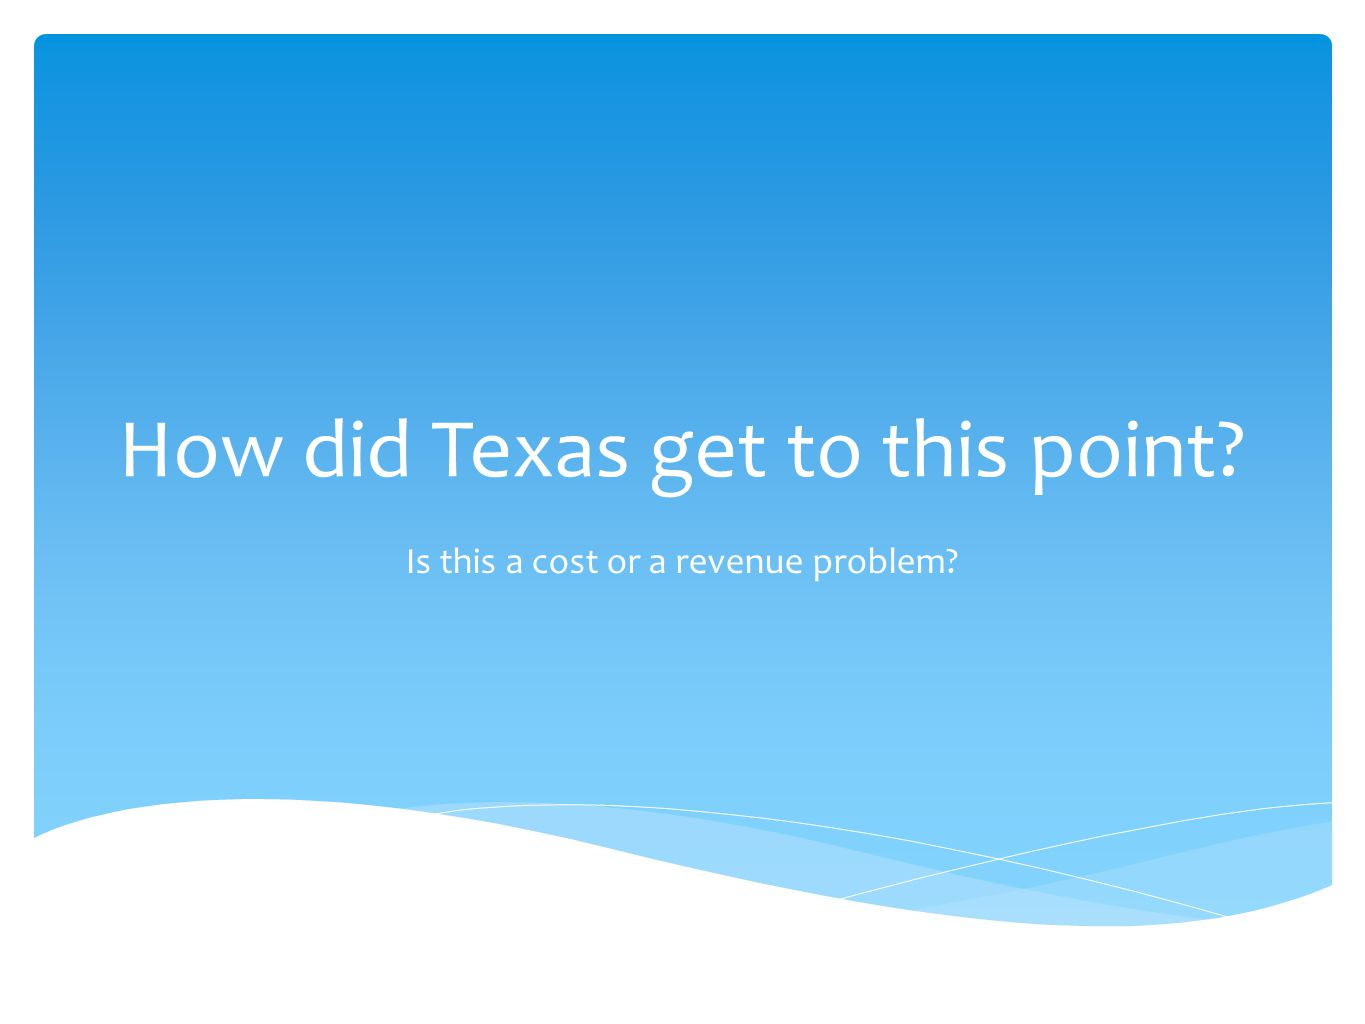 How did Texas get to this point? Is this a cost or a revenue problem?